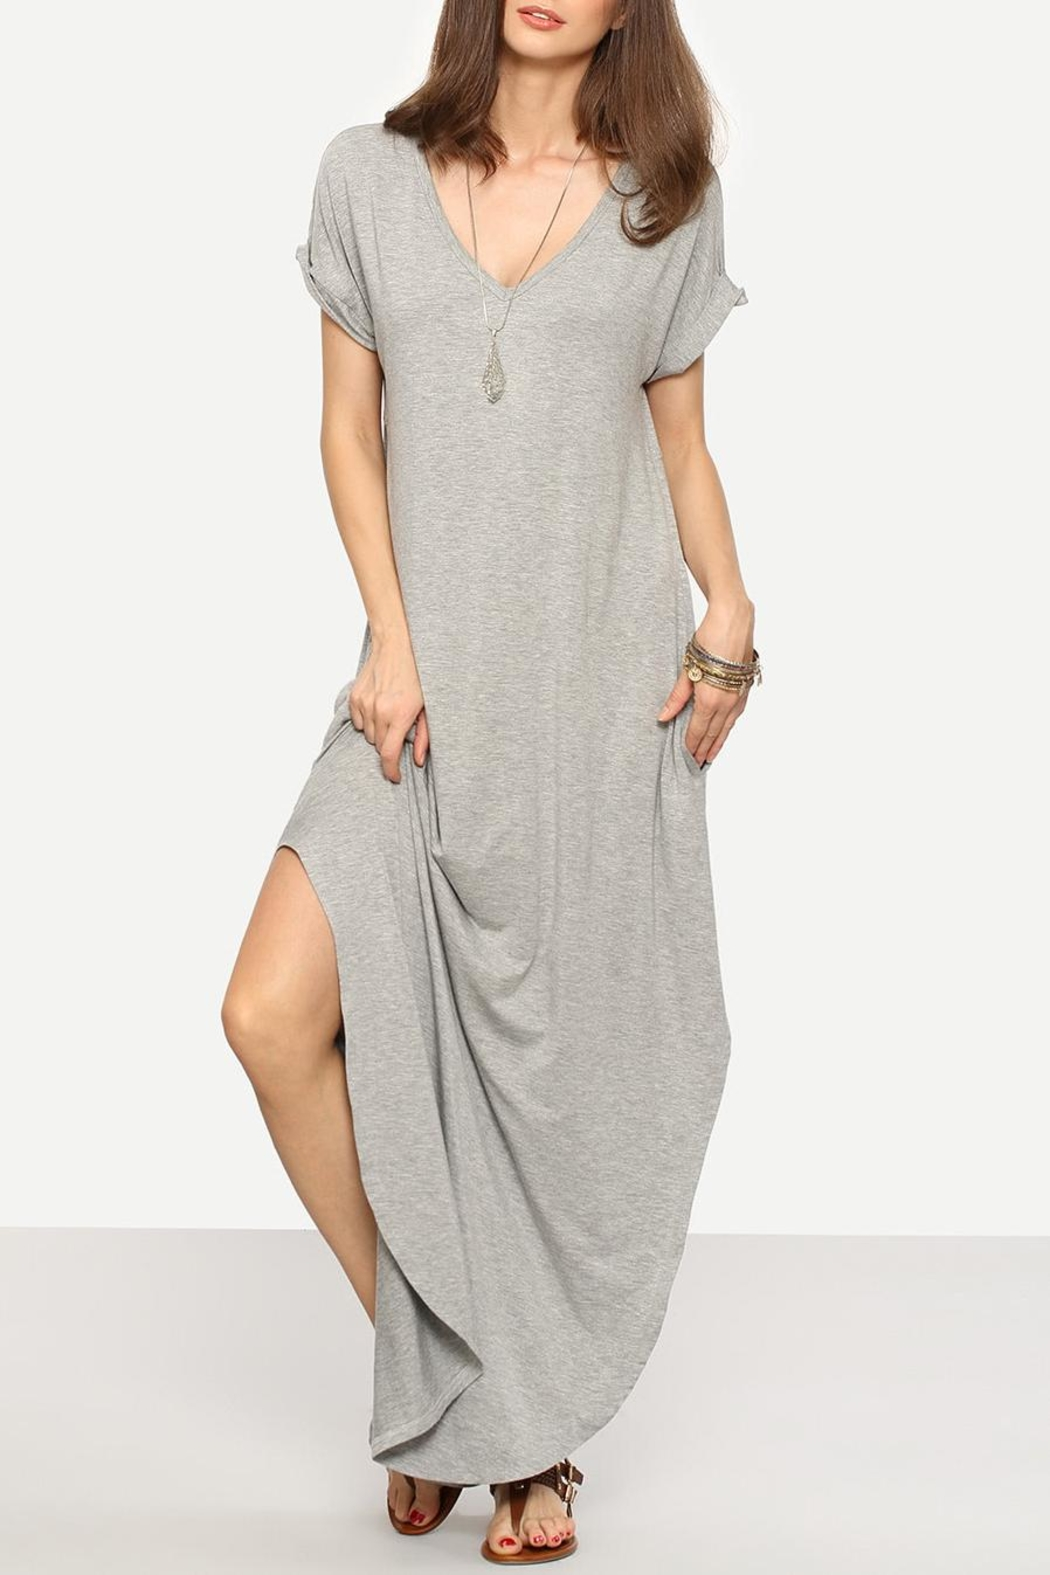 Avenue Hill Casual Shift Maxi Dress - Front Cropped Image